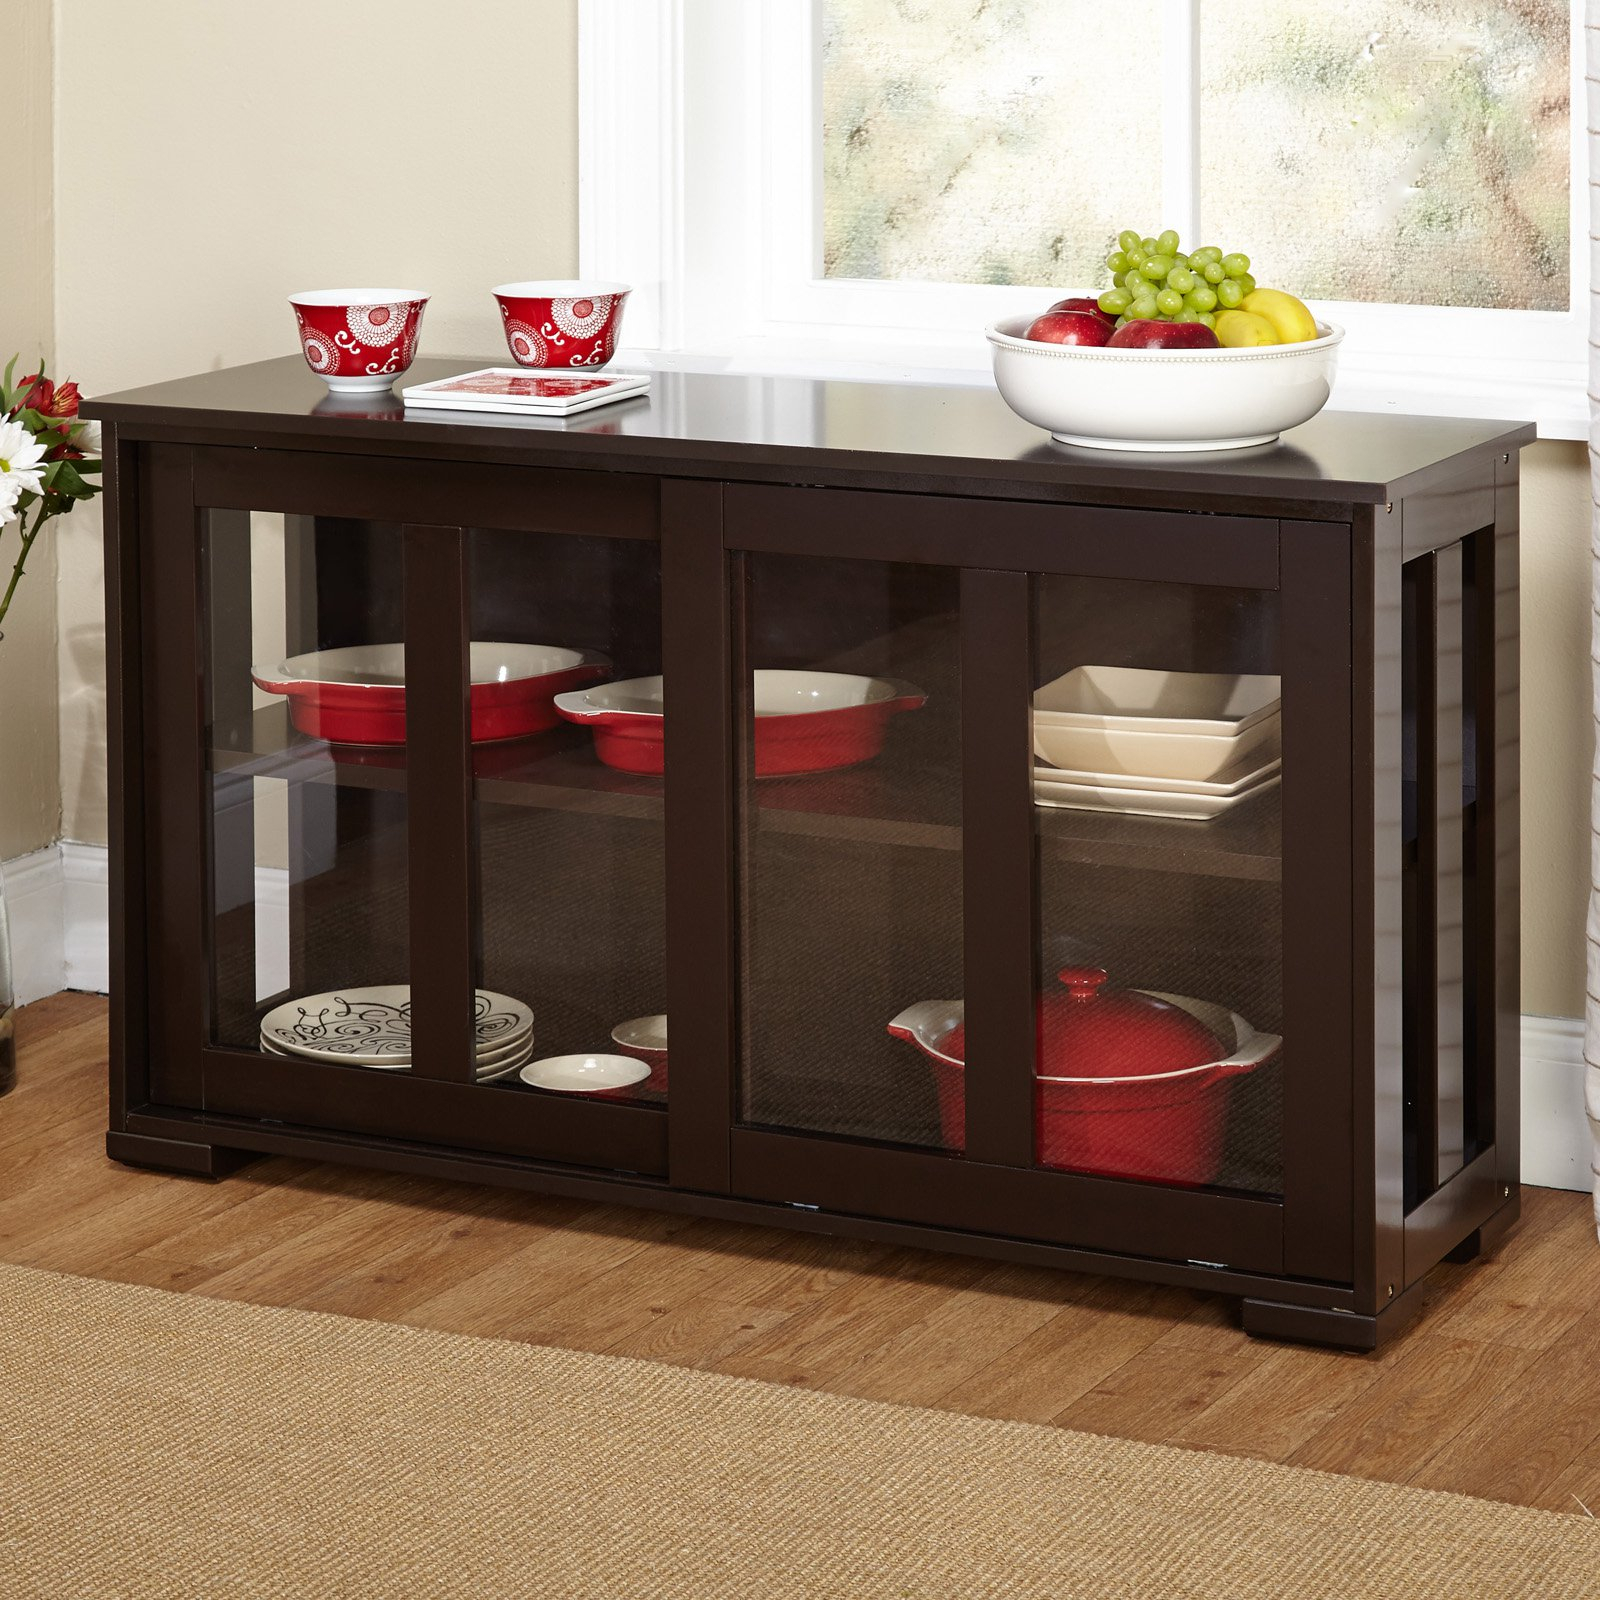 Sliding Tempered Glass Doors Stackable Storage Cabinet, Multiple Colors Within Espresso Sliding Door Stackable Buffets (View 4 of 30)